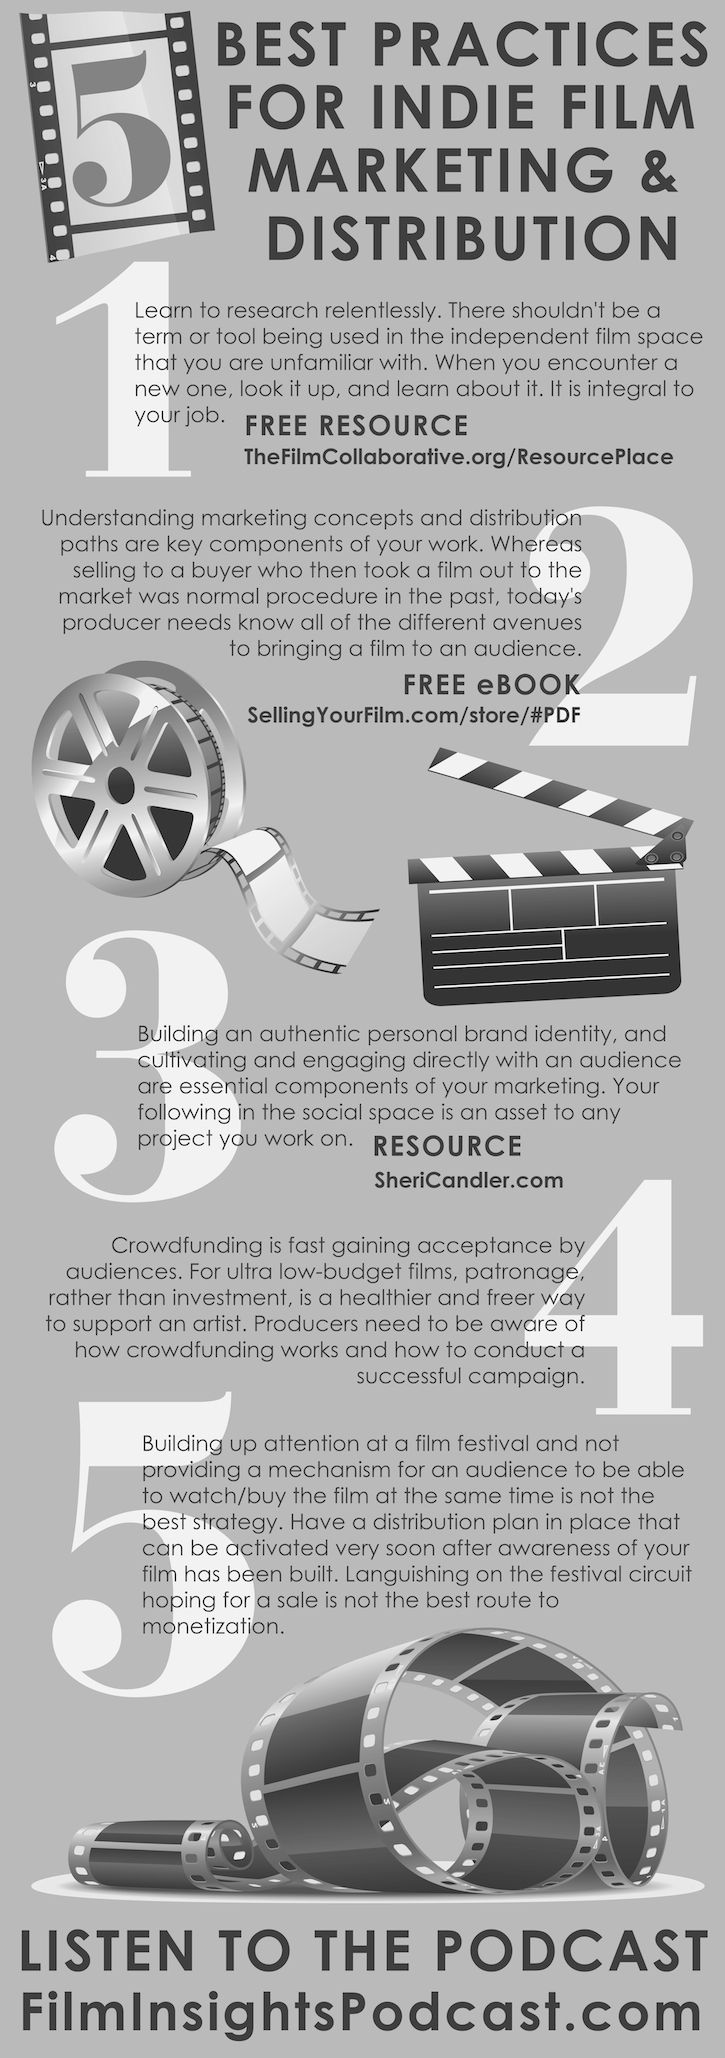 an infographic based on 5 things independent film